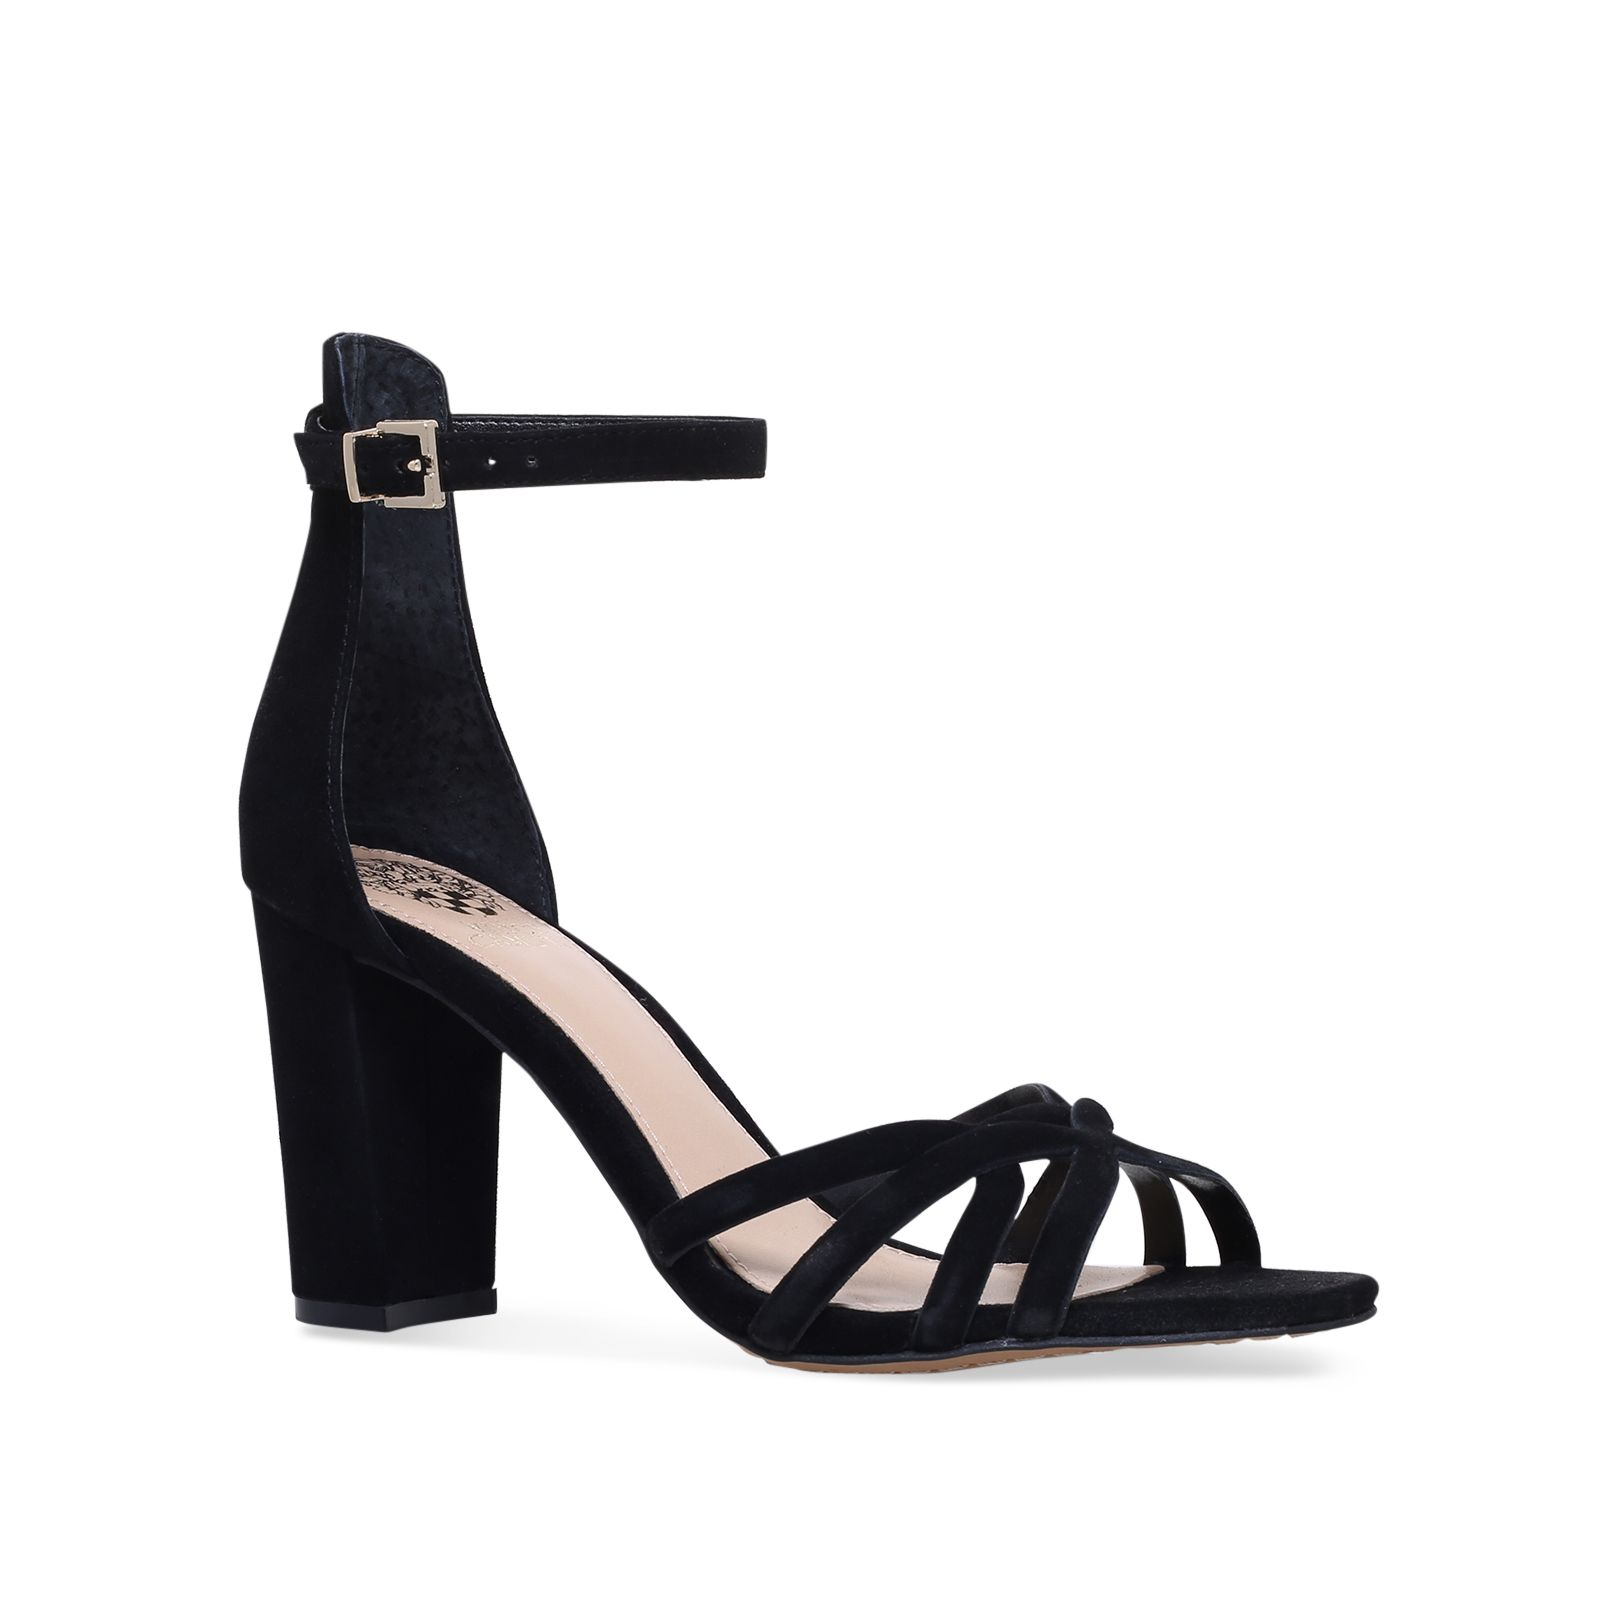 Vince Camuto Catelia Sandals, Black